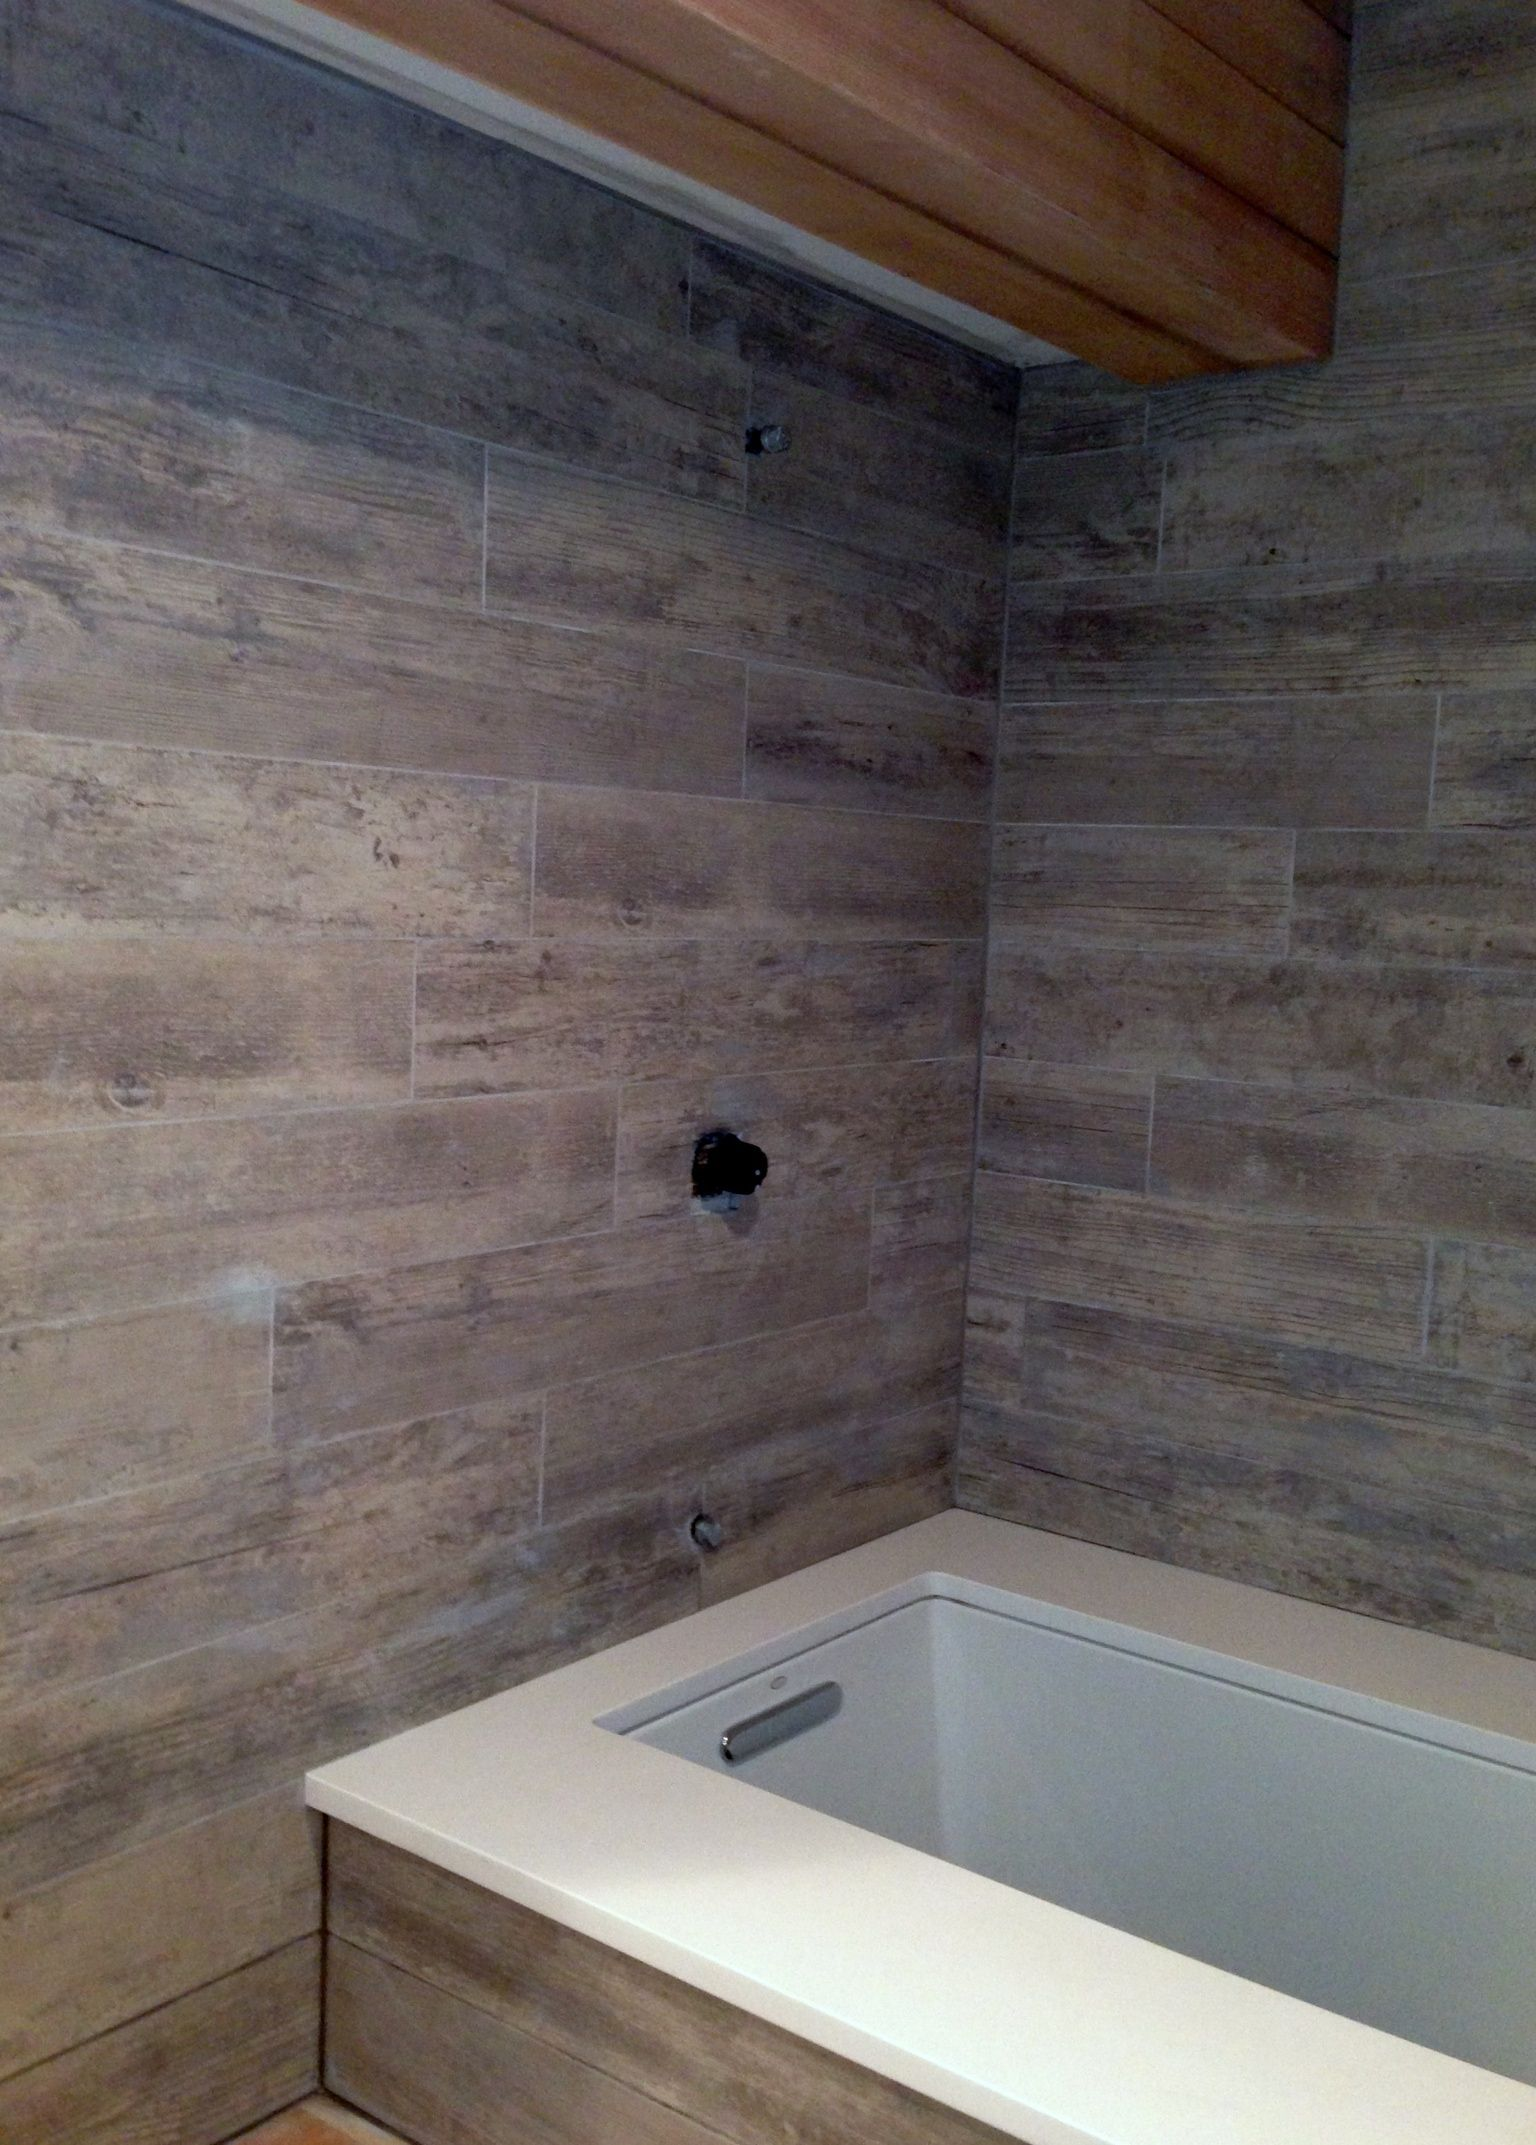 The New Wood Grain Tile That I Selected Goes Up For The Shower Surround I Love How It Looks Like Weathered Barn Wood Tile Bathroom Shower Tile Tile Bathroom